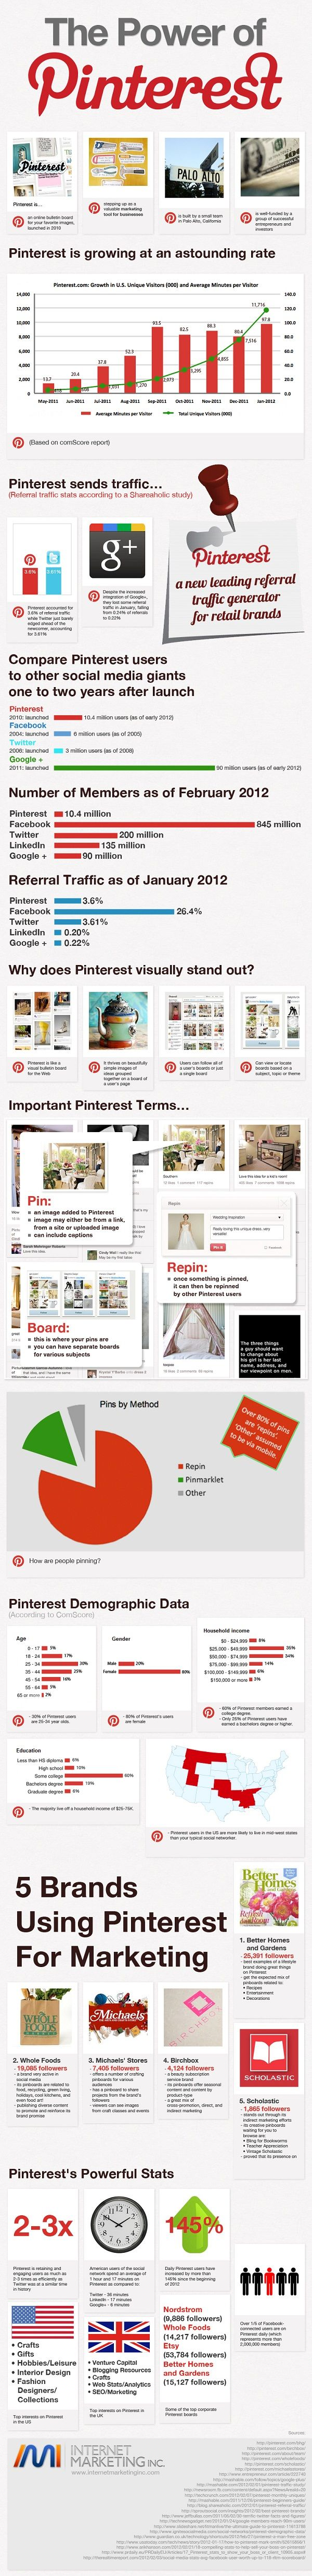 the-power-of-pinterest-infographic.jpg